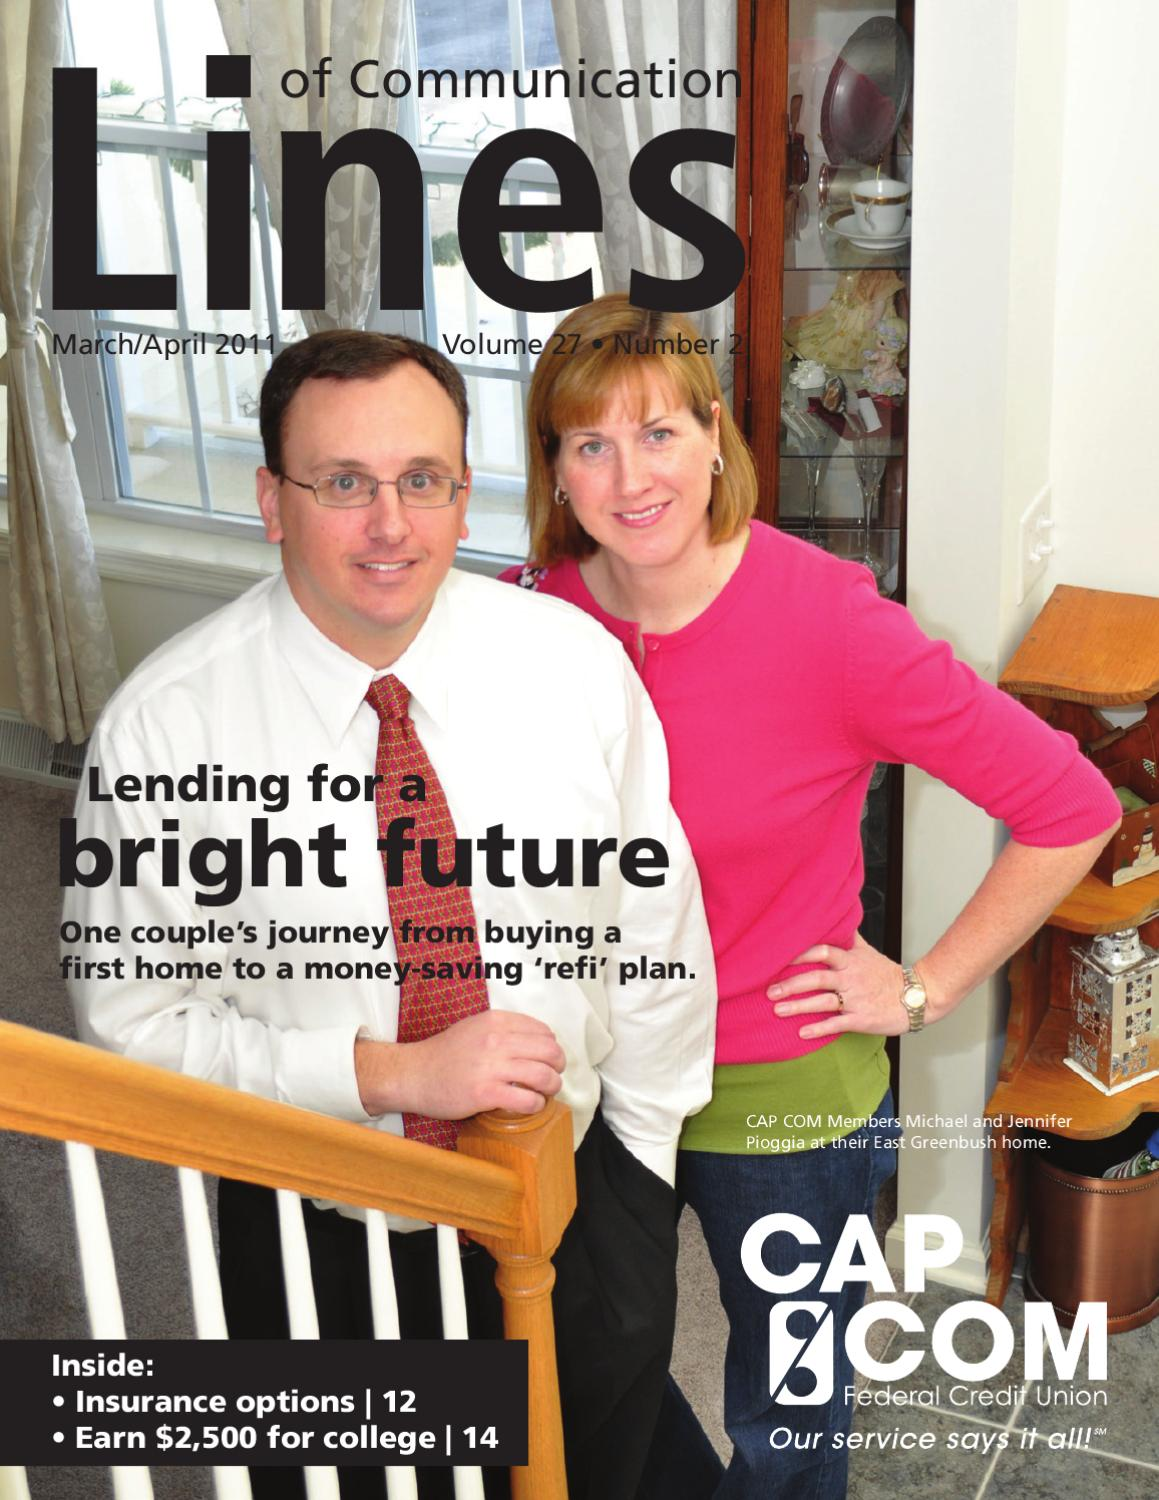 March_April_2011 by CAP COM Federal Credit Union - issuu